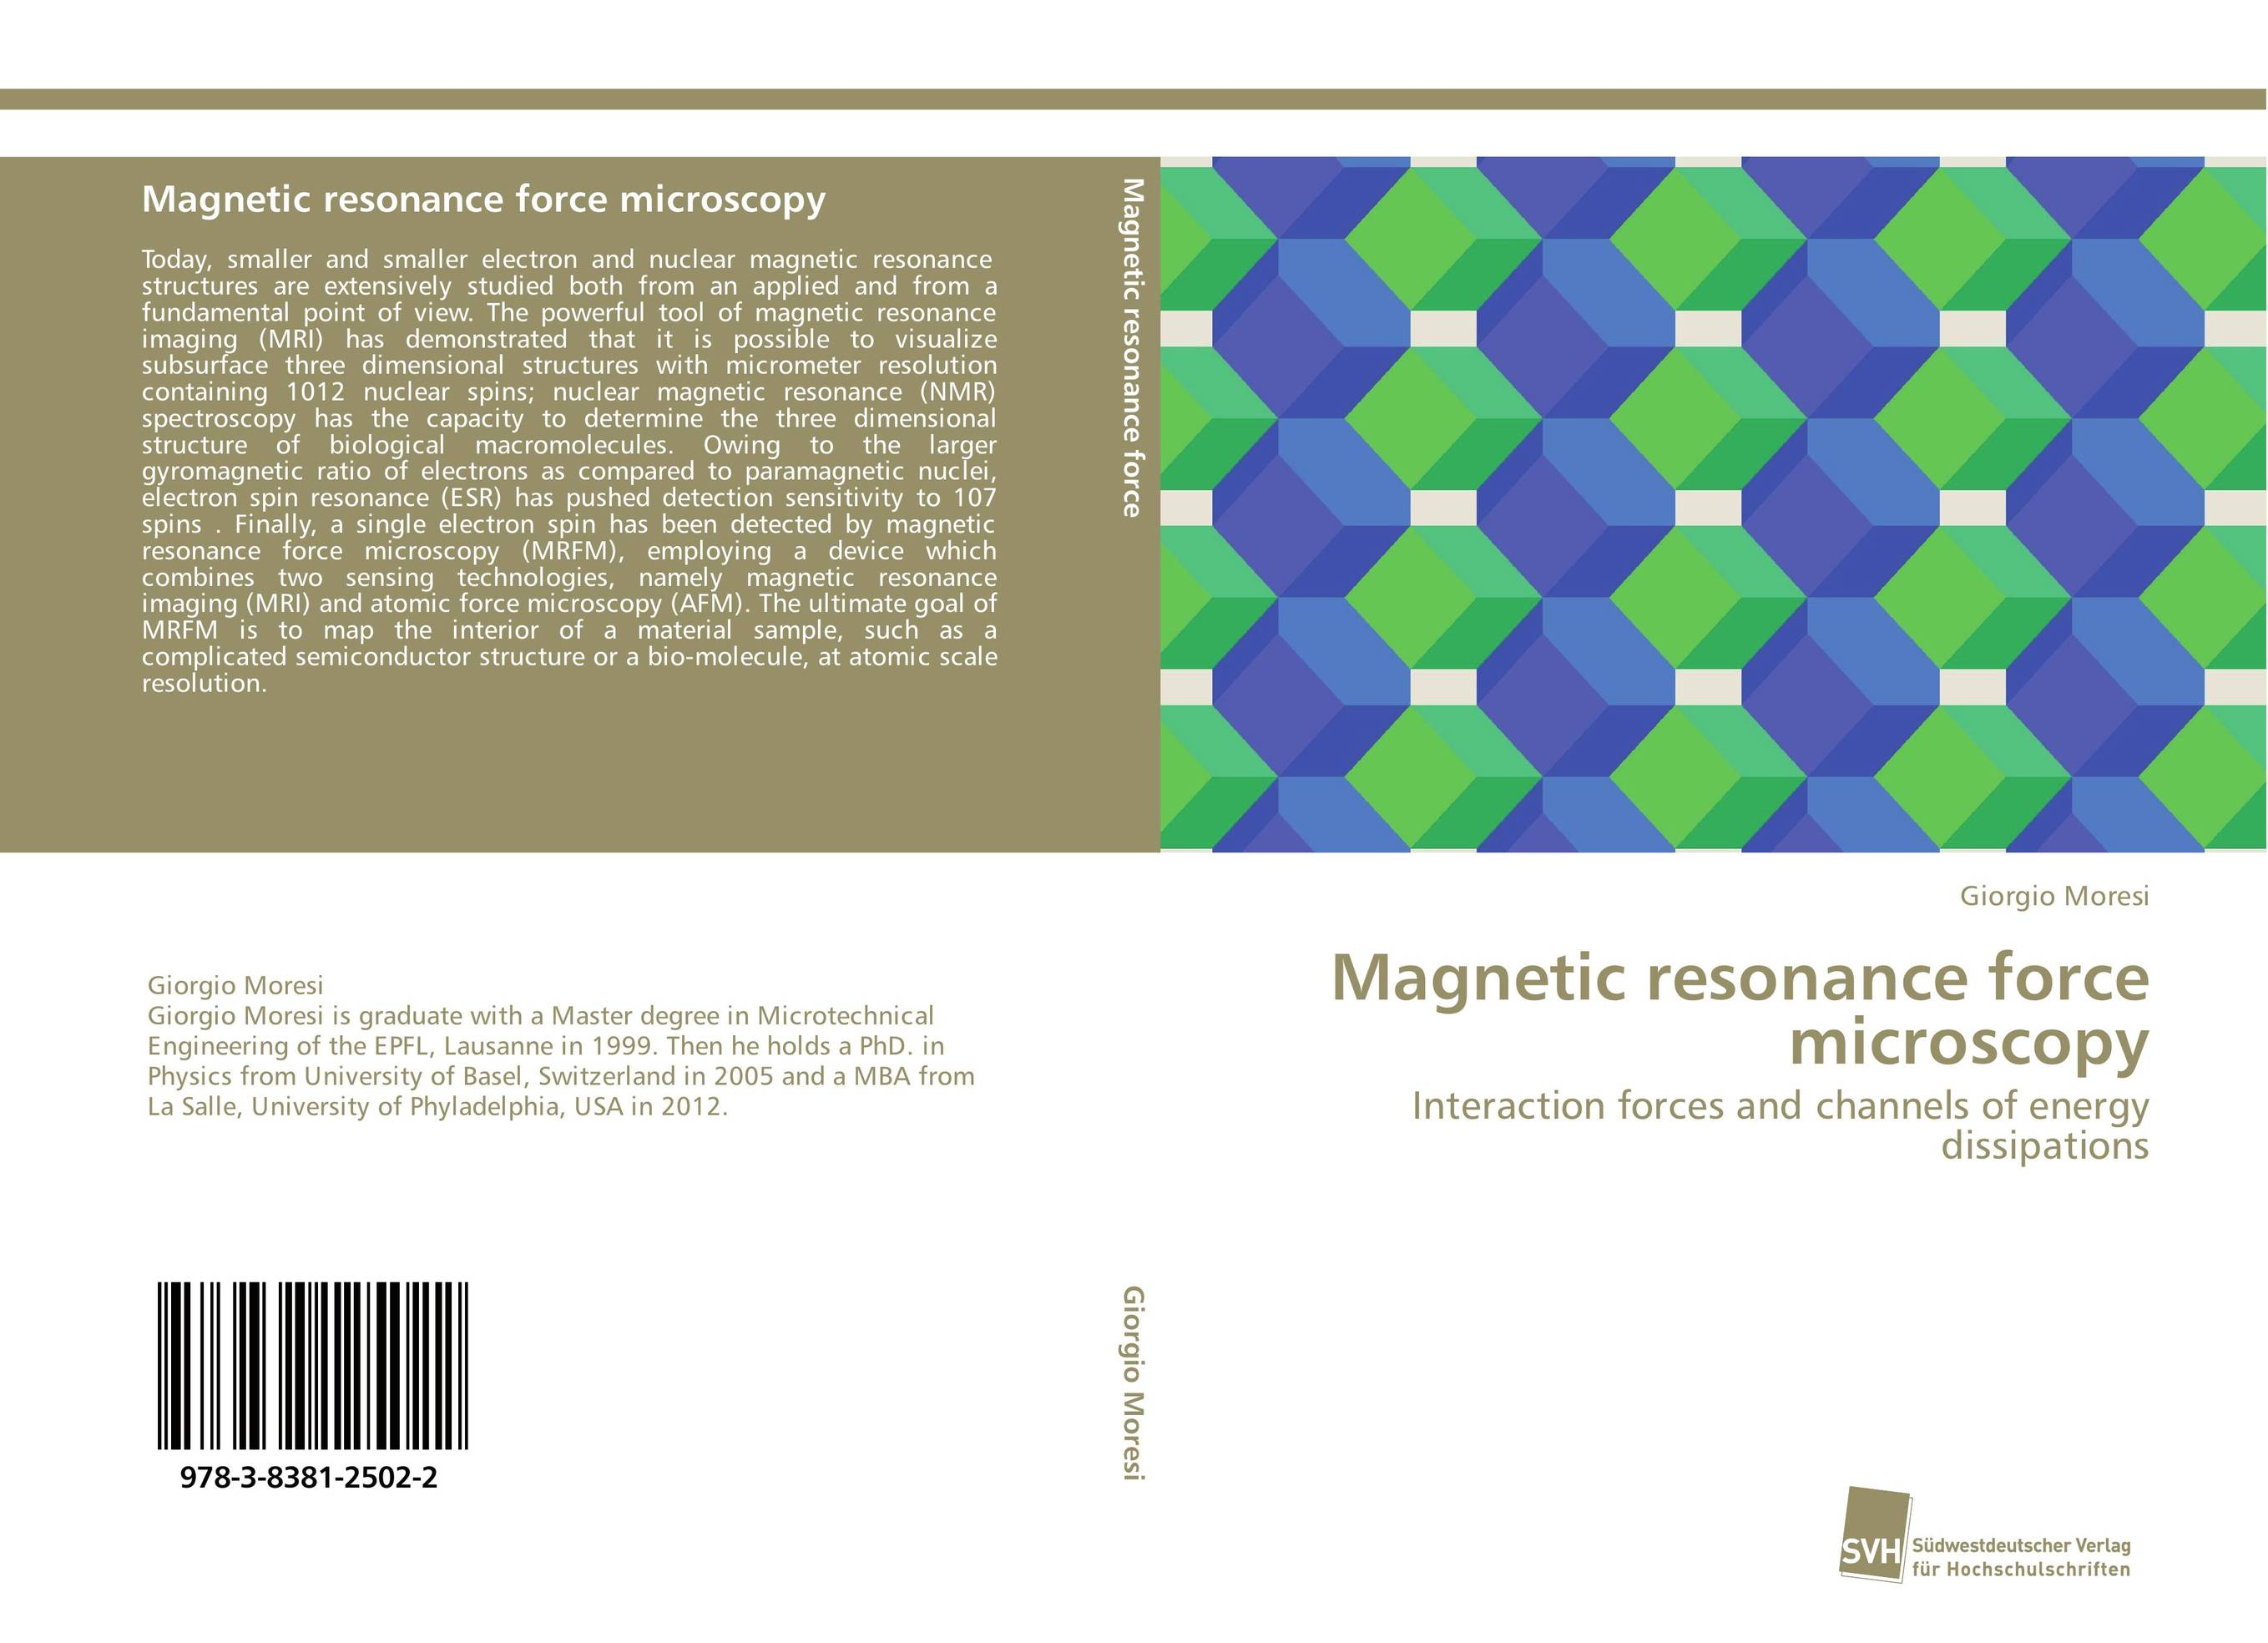 Magnetic resonance force microscopy surface nuclear magnetic resonance